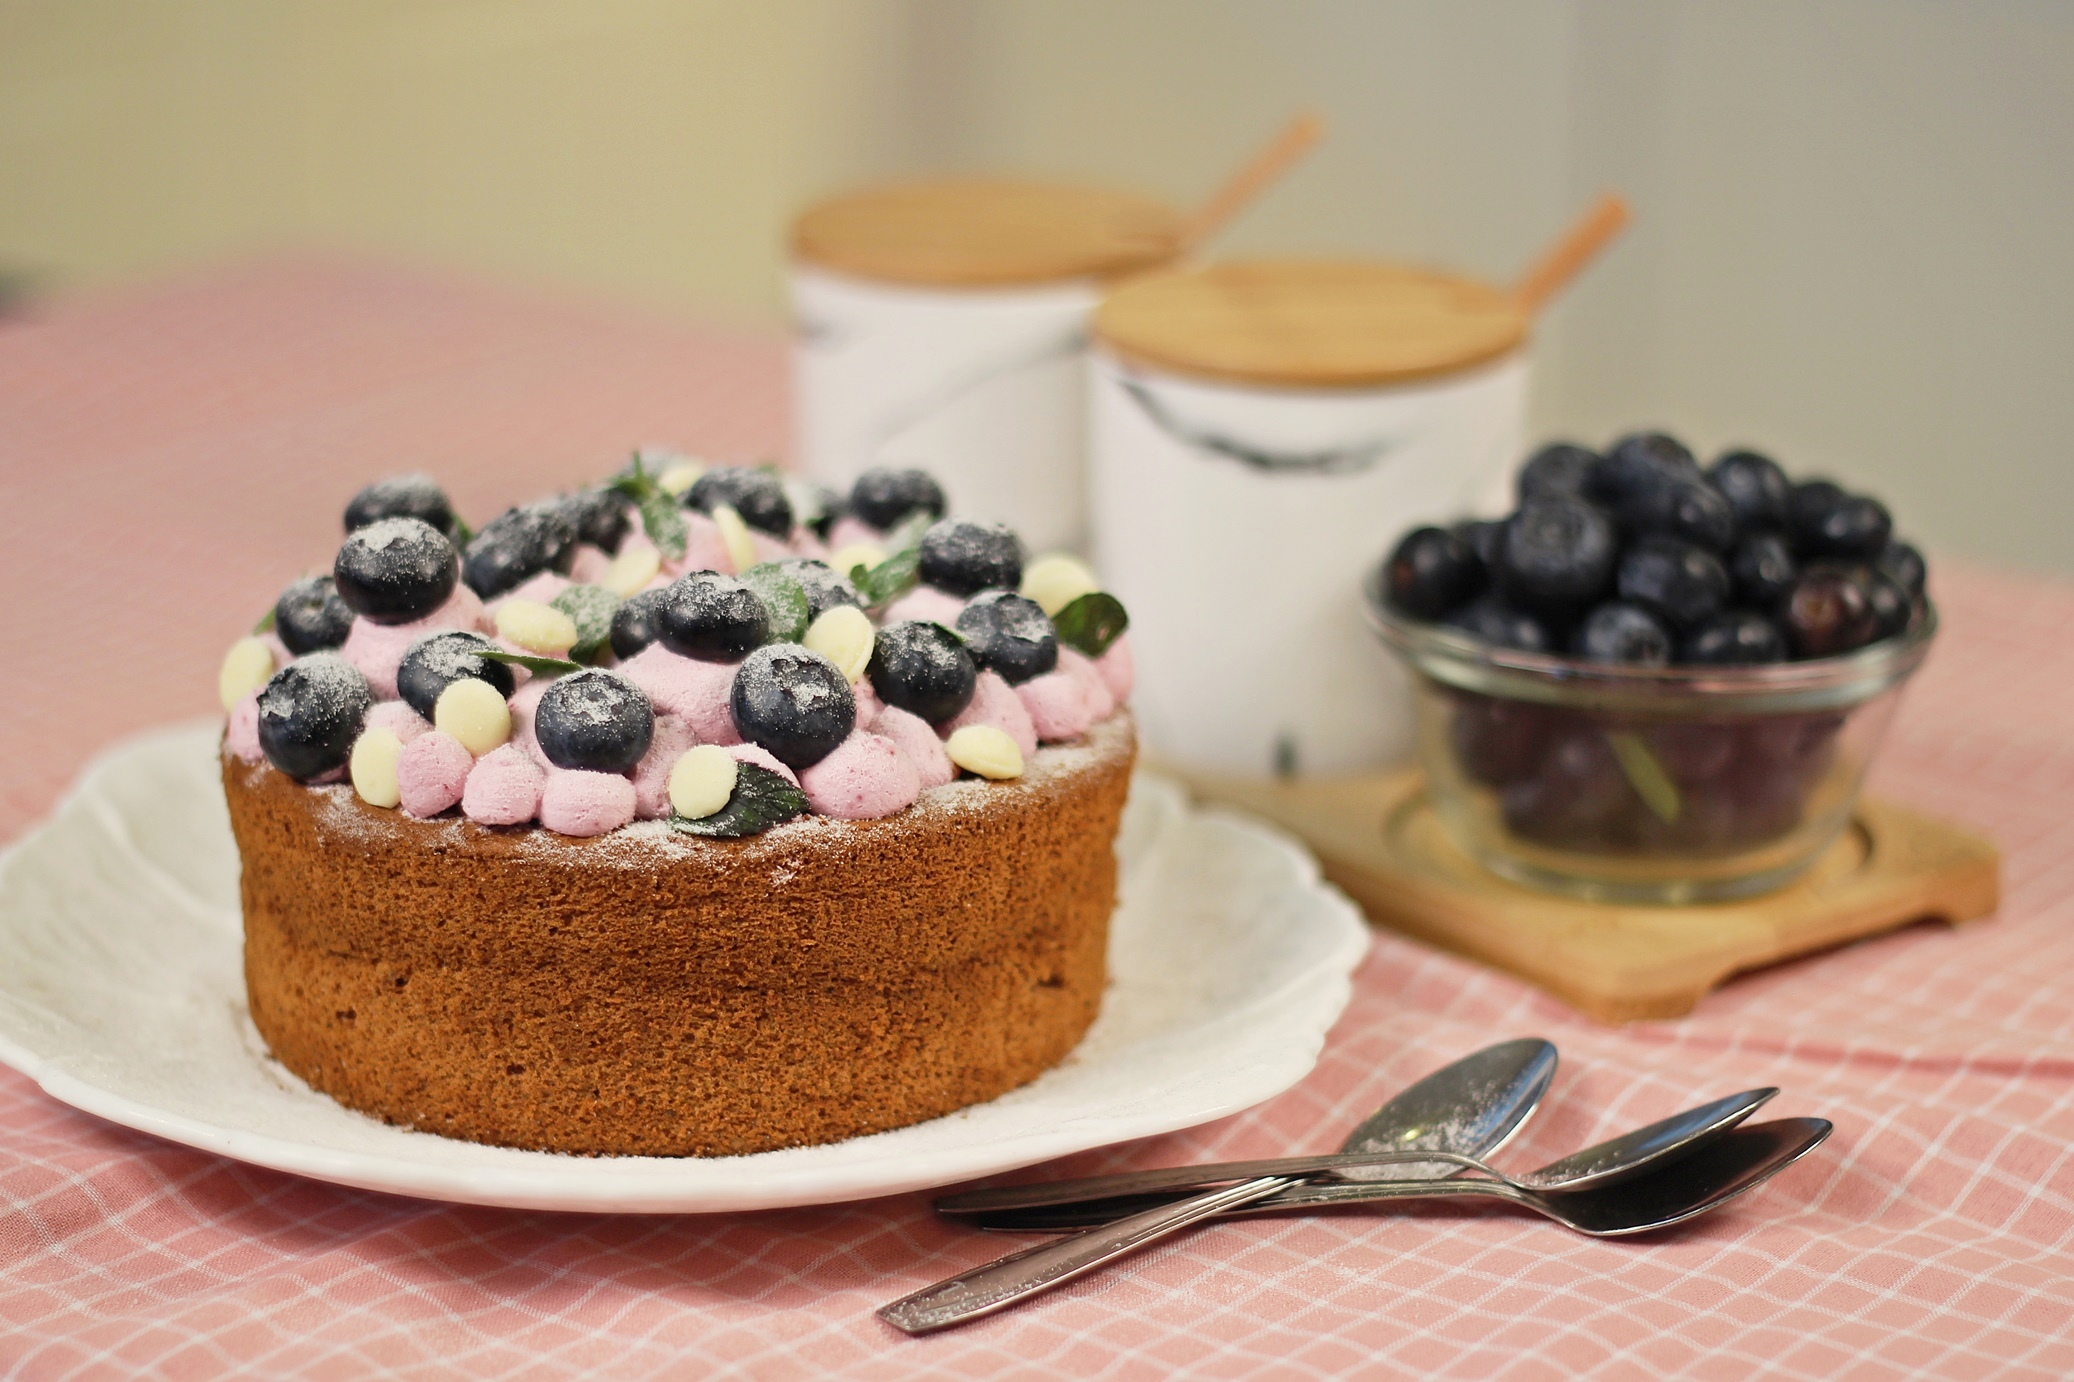 Blackcurrant Sponge Cake